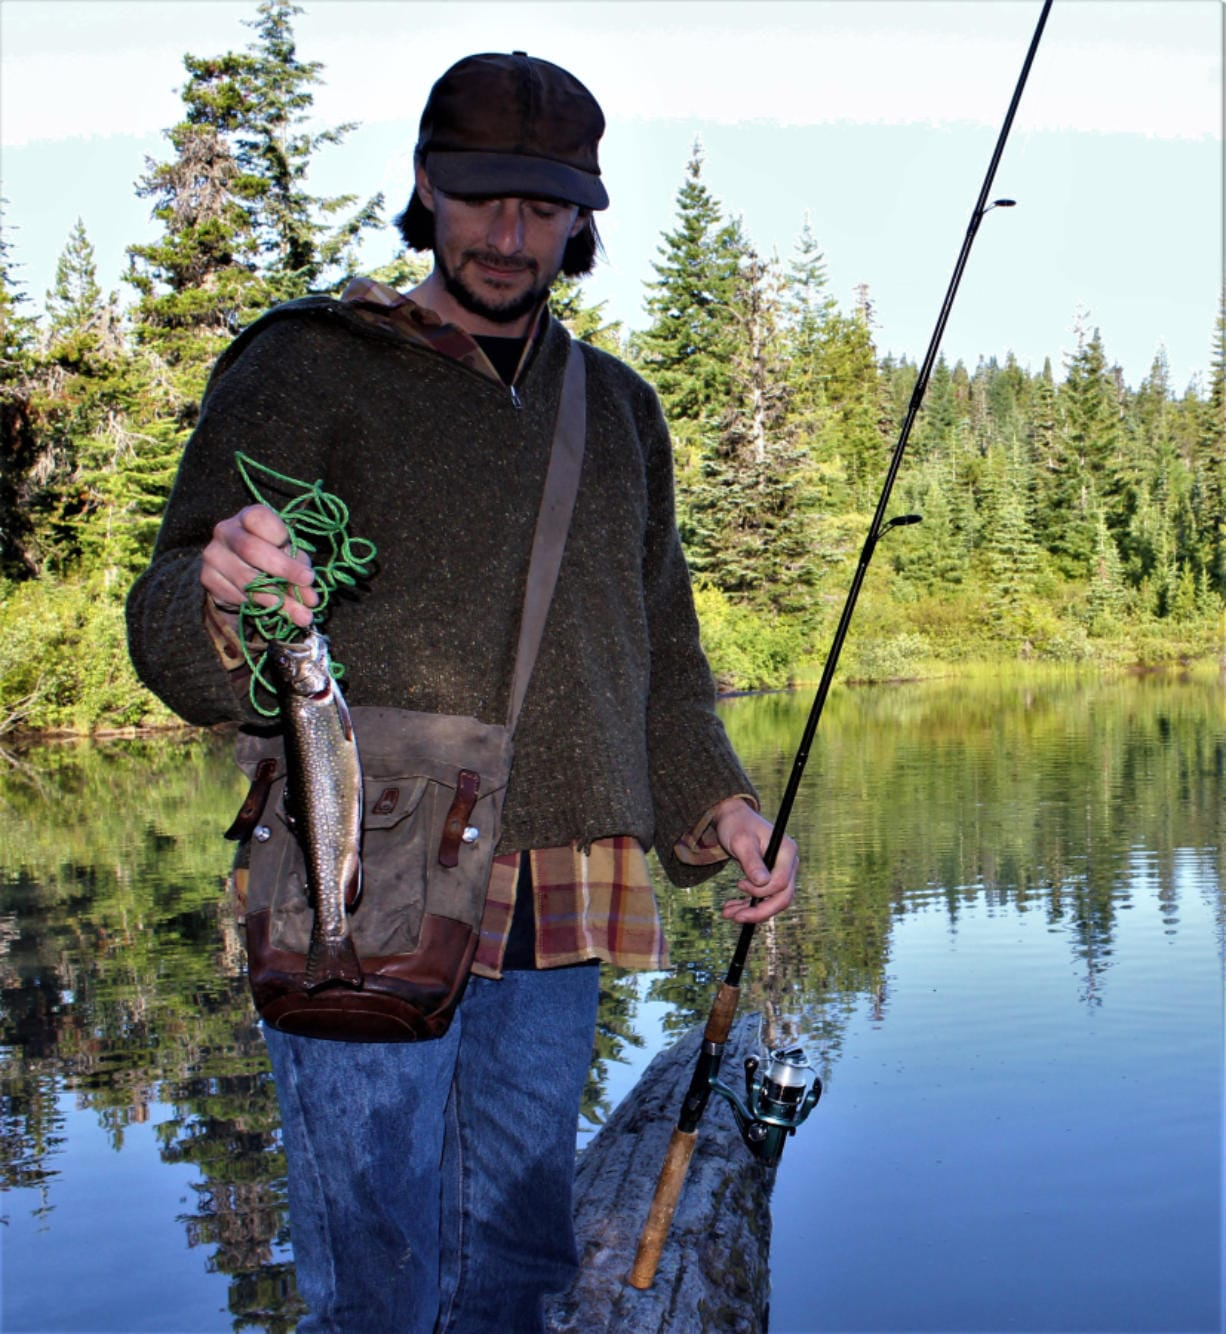 During the recent fishing closure due to the Coronavirus pandemic the WDFW continued to stock lakes with trout.